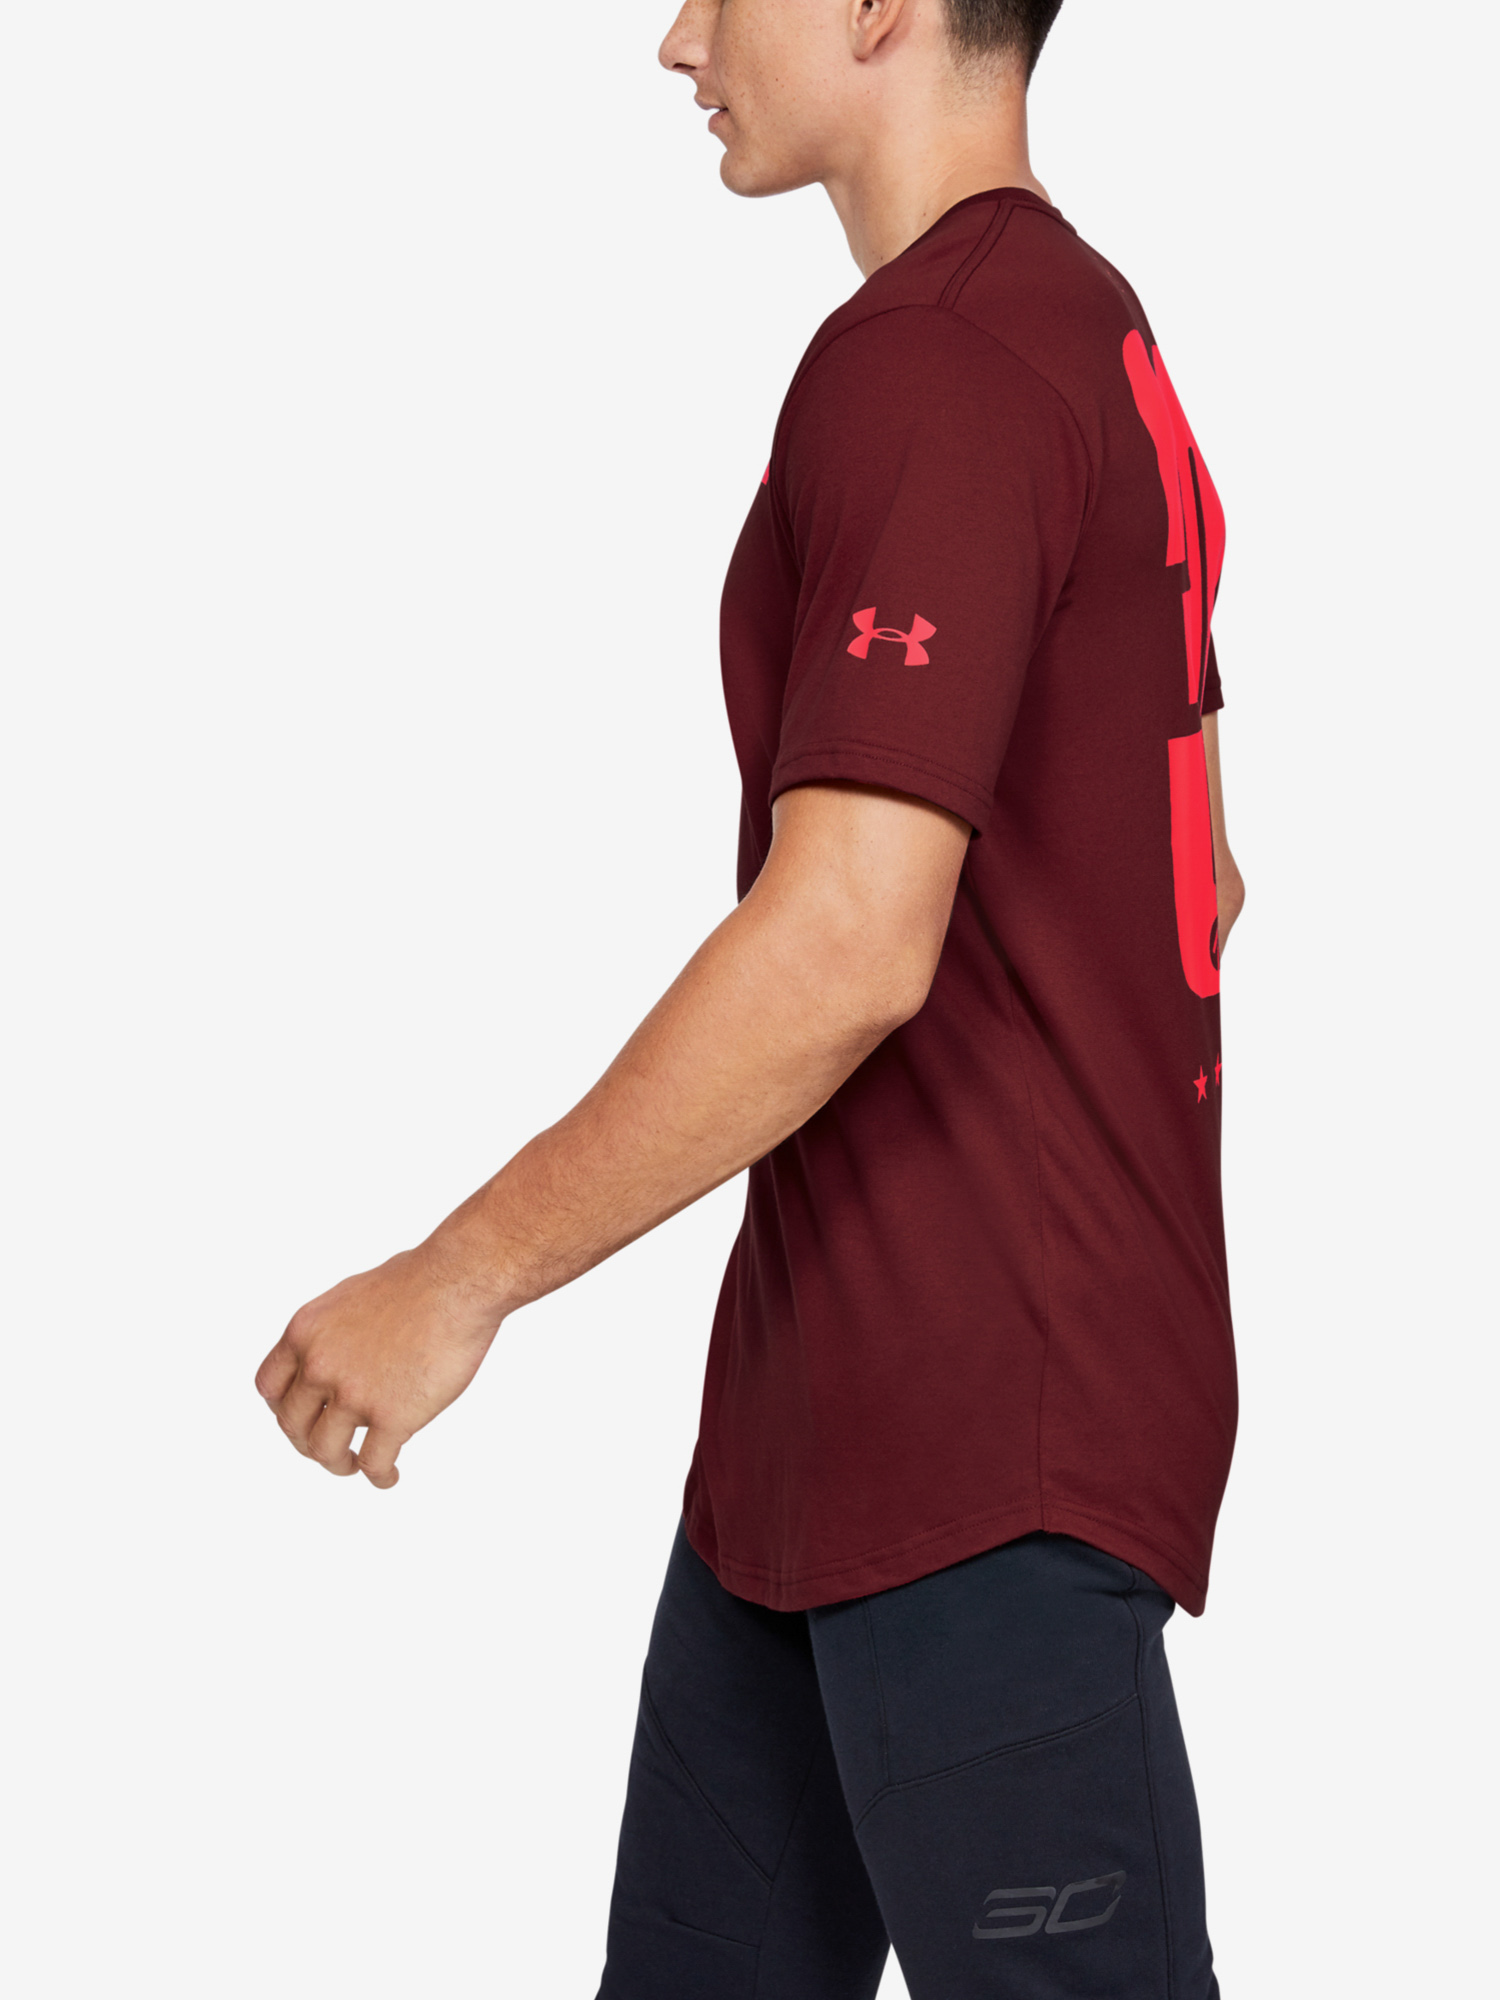 Tričko Under Armour Sc30 Ss Elevated Tee (3)